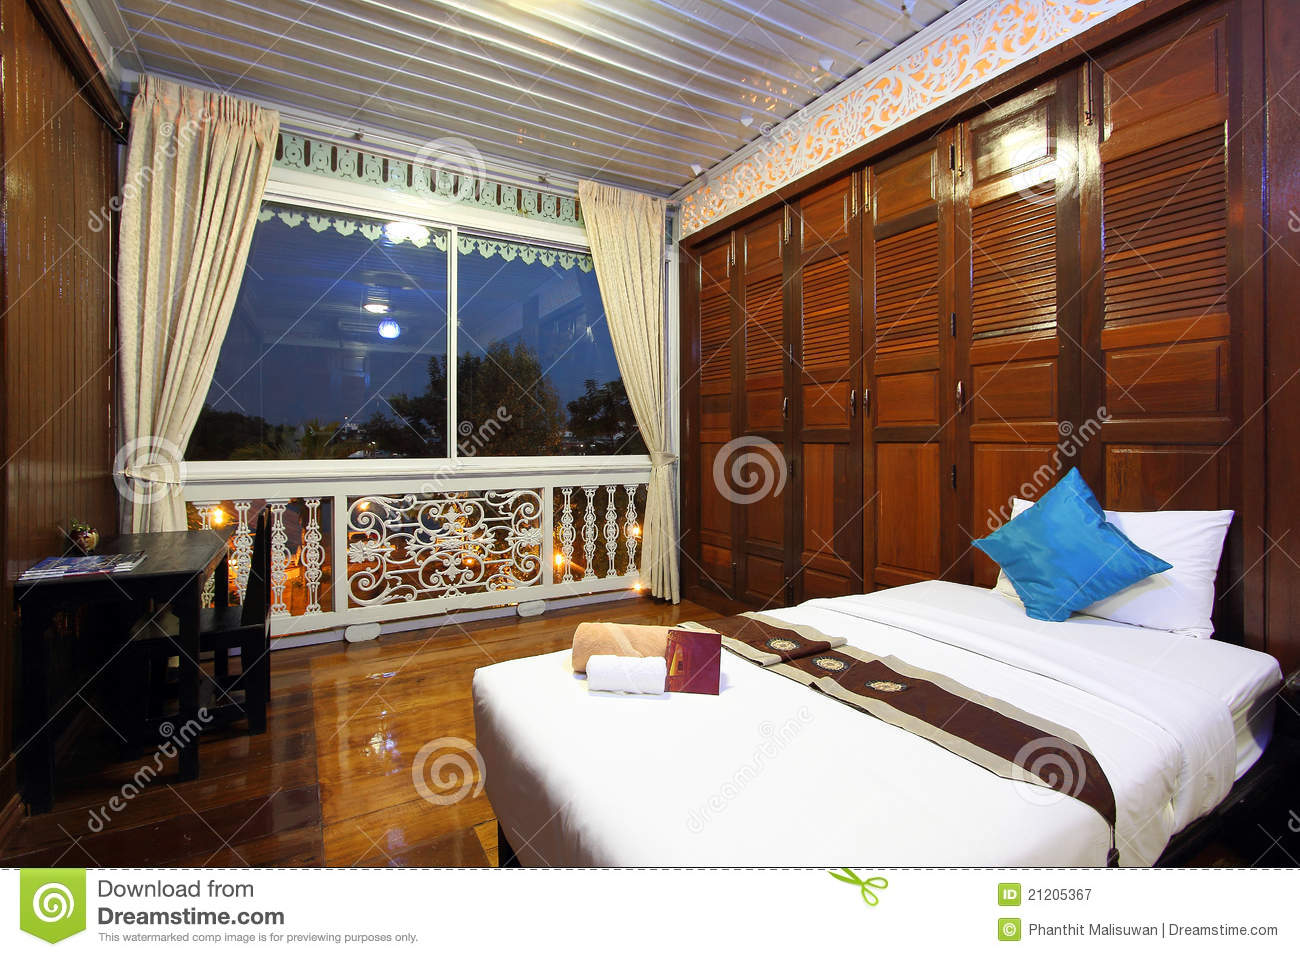 Slaapkamer Stijl Thai Style Tropical Hotel Bedroom Stock Image - Image